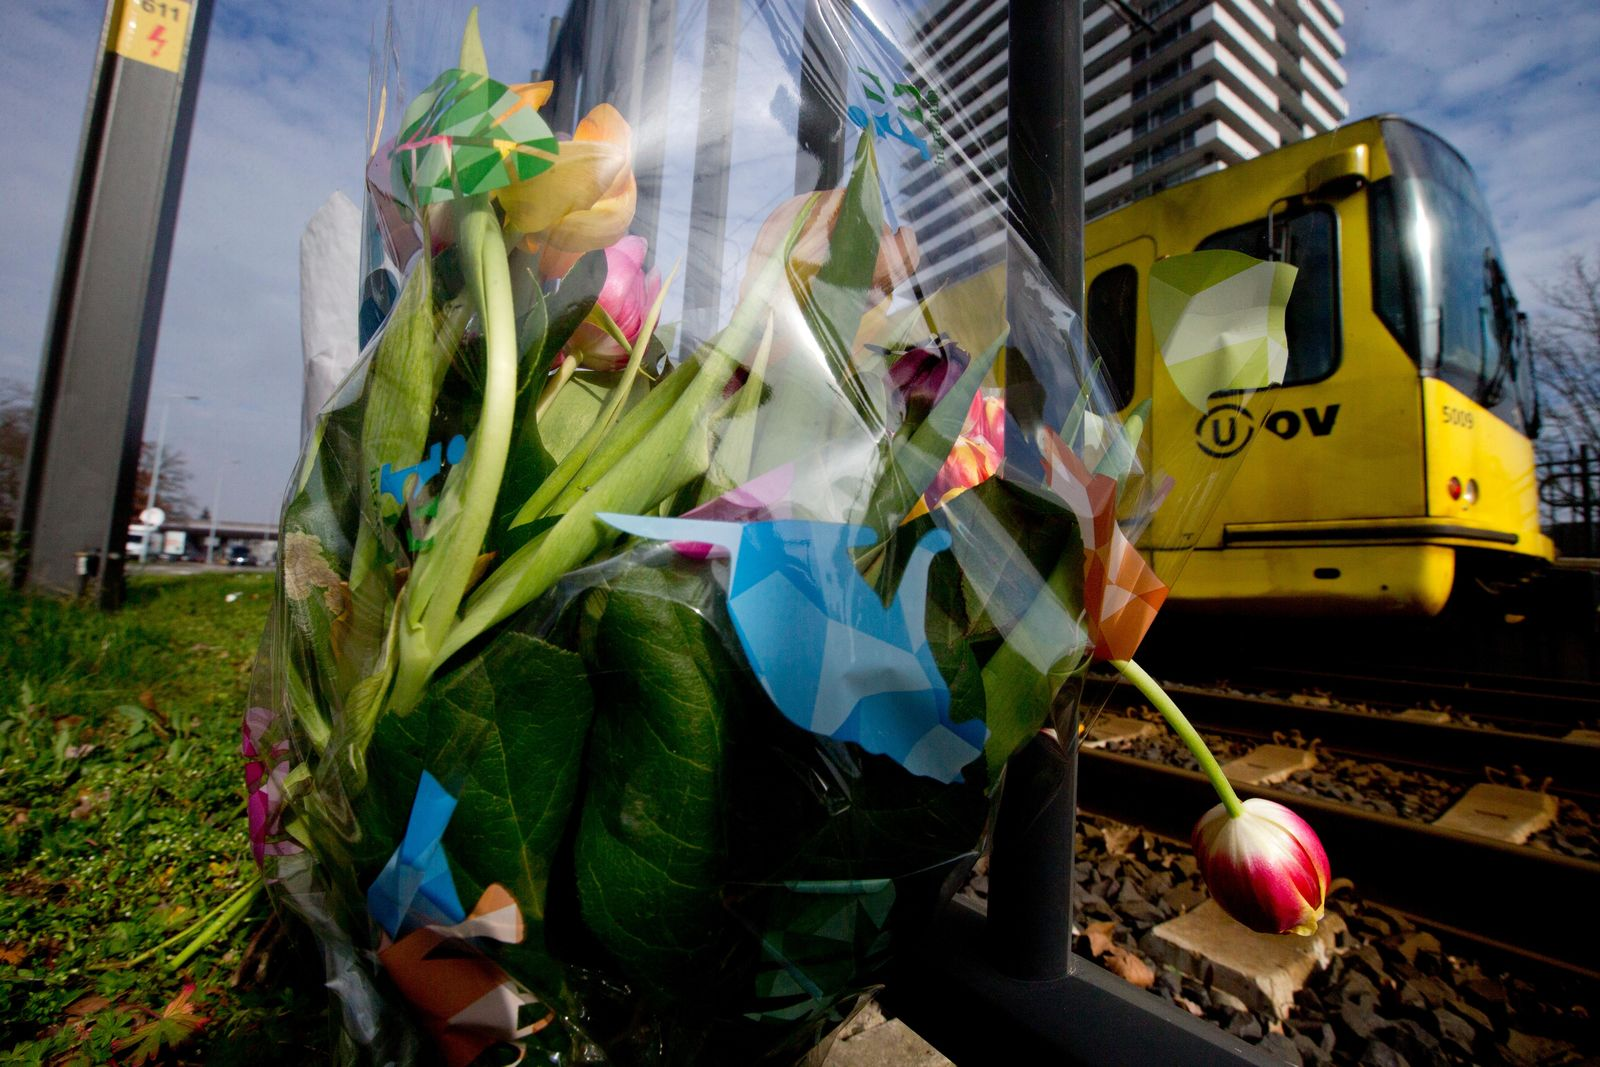 A tram passes flowers placed at the site of a shooting incident on a tram, in Utrecht, Netherlands, Tuesday, March 19, 2019. (AP Photo/Peter Dejong)